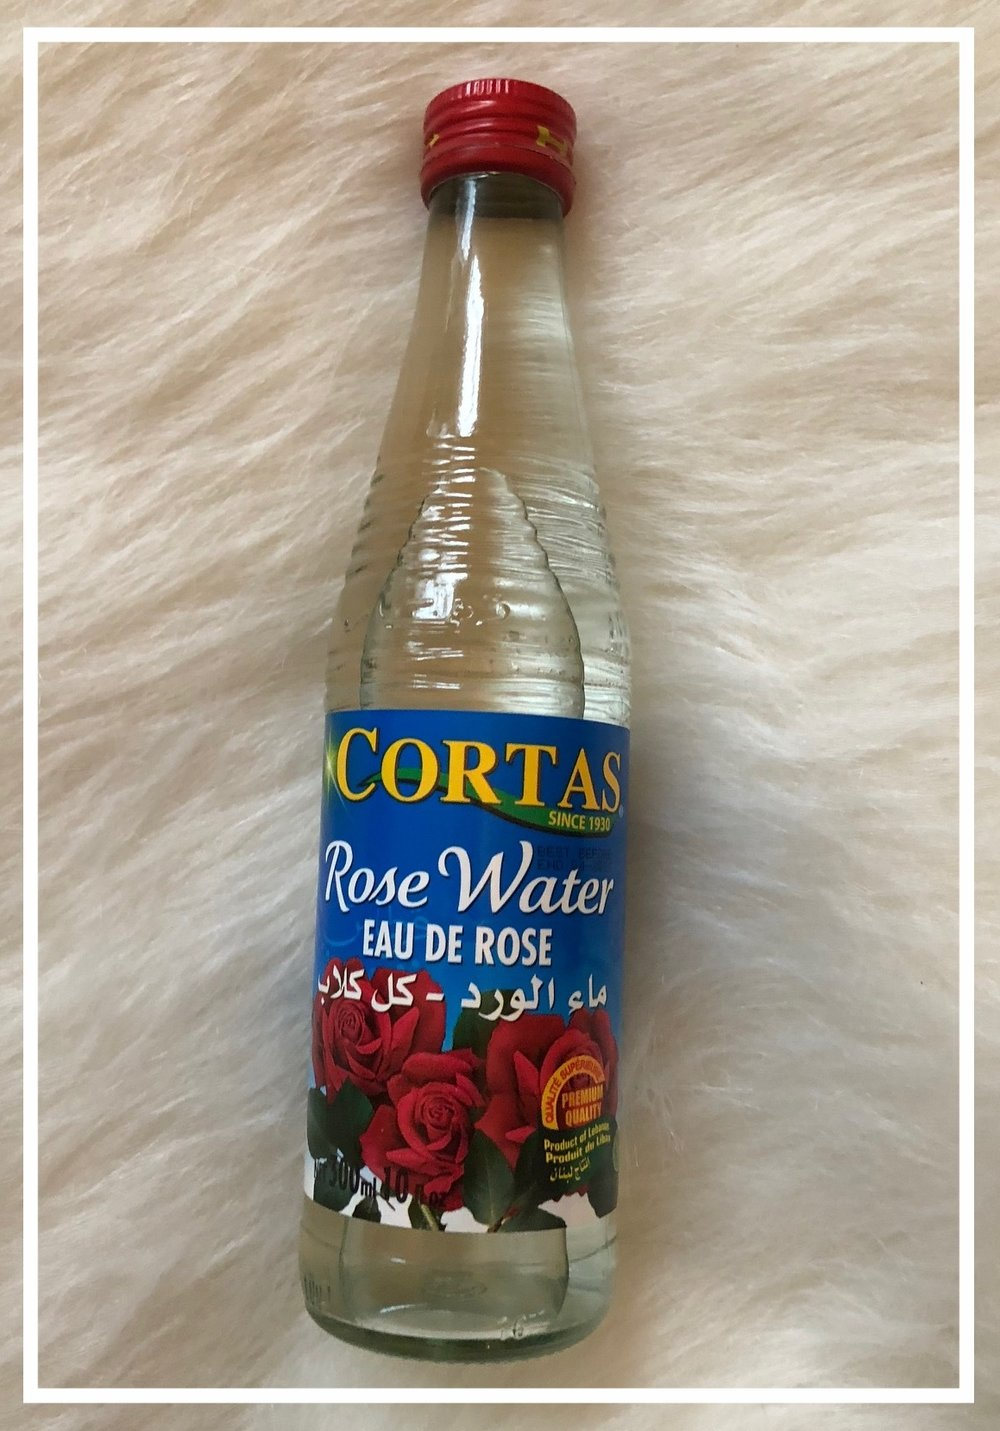 Rose Water TONER FOR SOFT Skin Routine - After double cleansing, and toning, apply the Rose Water to a cotton ball and sweep across you face, neck, and chest. The smell is like angel wings and your skin will feel like fluffy clouds.